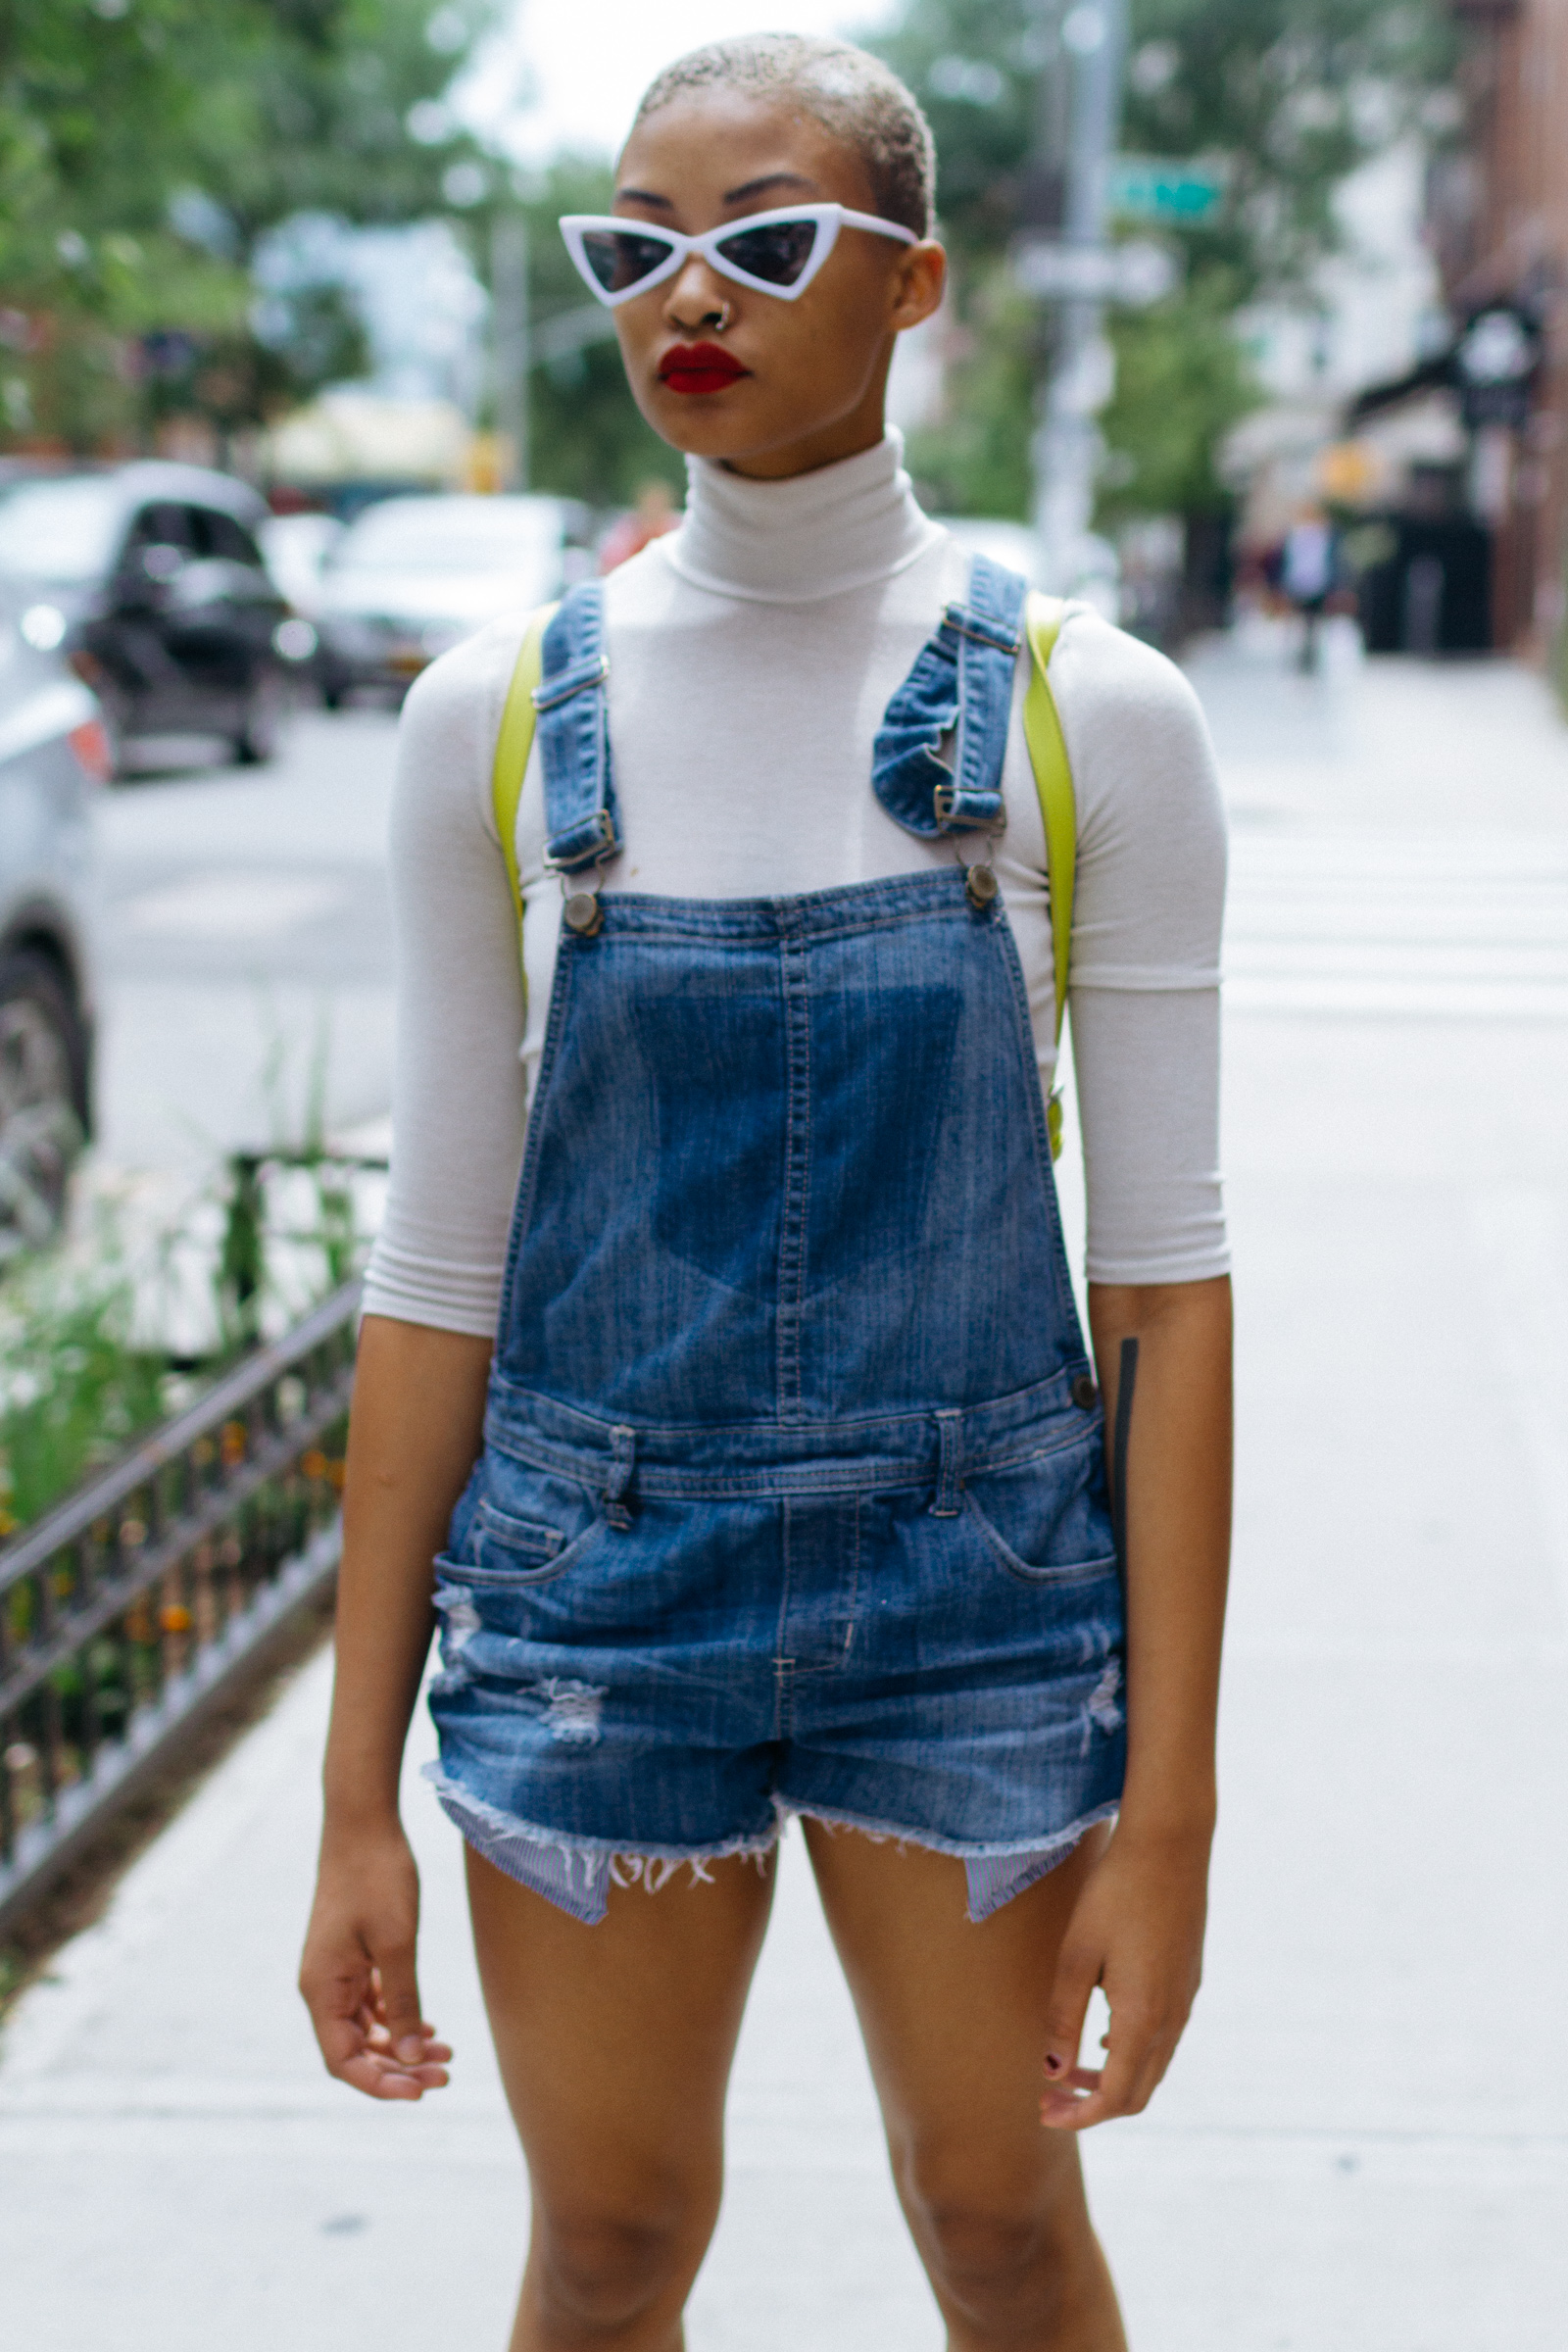 Summer Street Style in NYC's Williamsburg